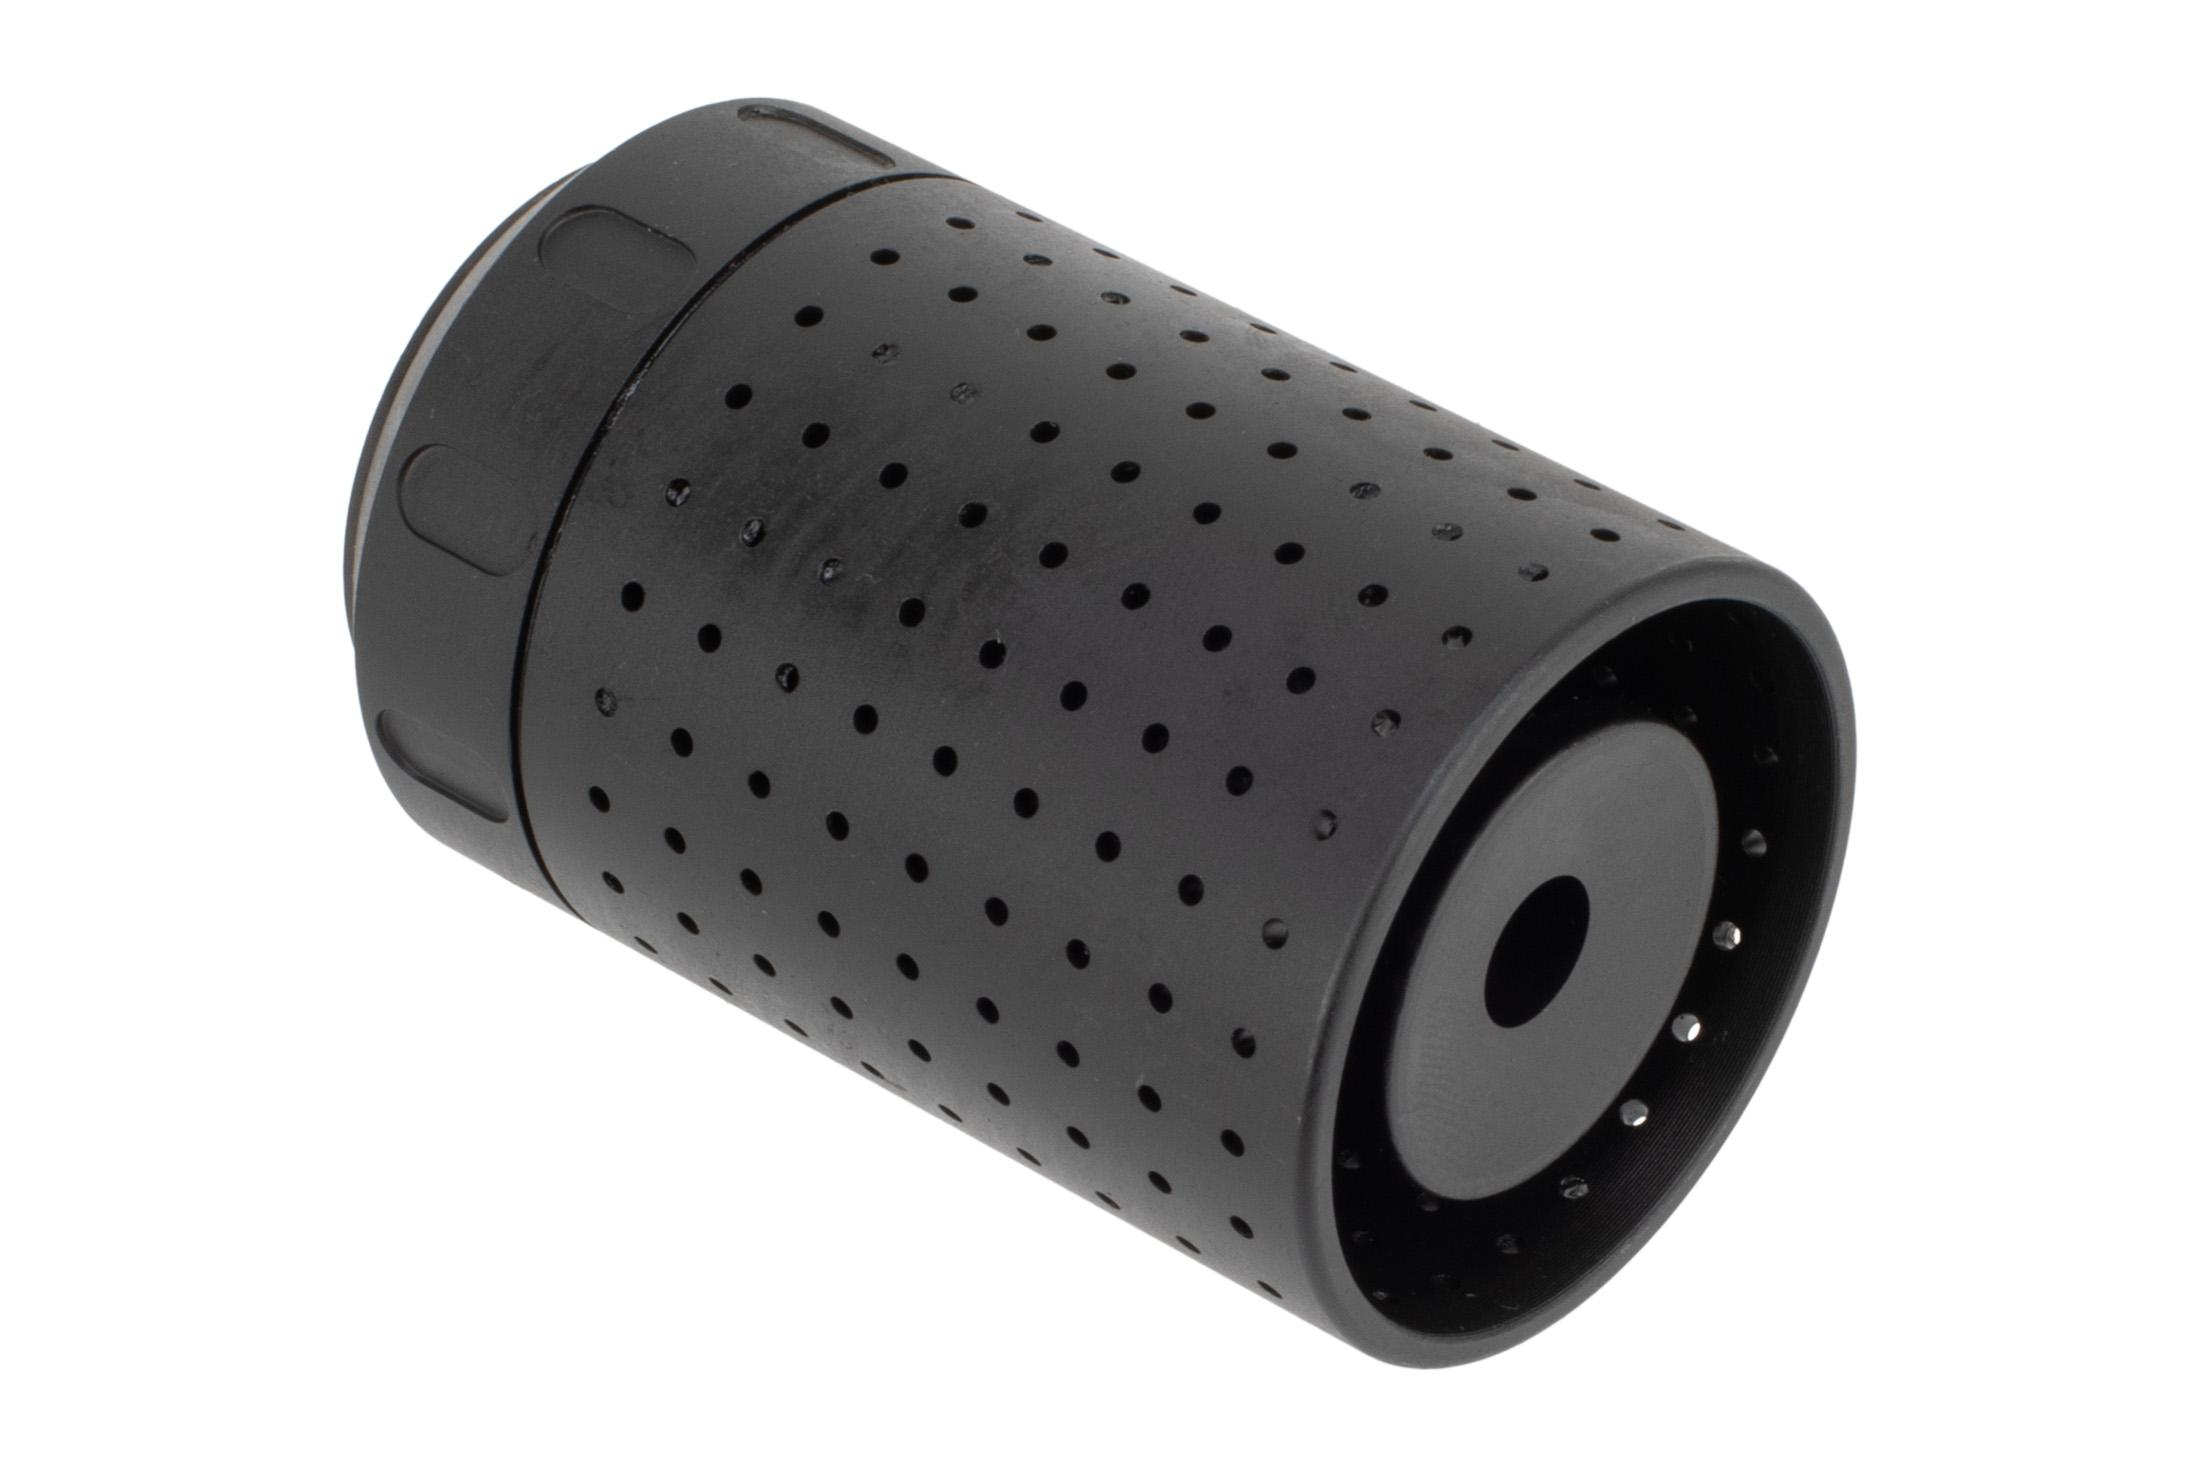 Ferfrans CRD Modular Concussion Reduction Device and Muzzle Brake - 1/2x28